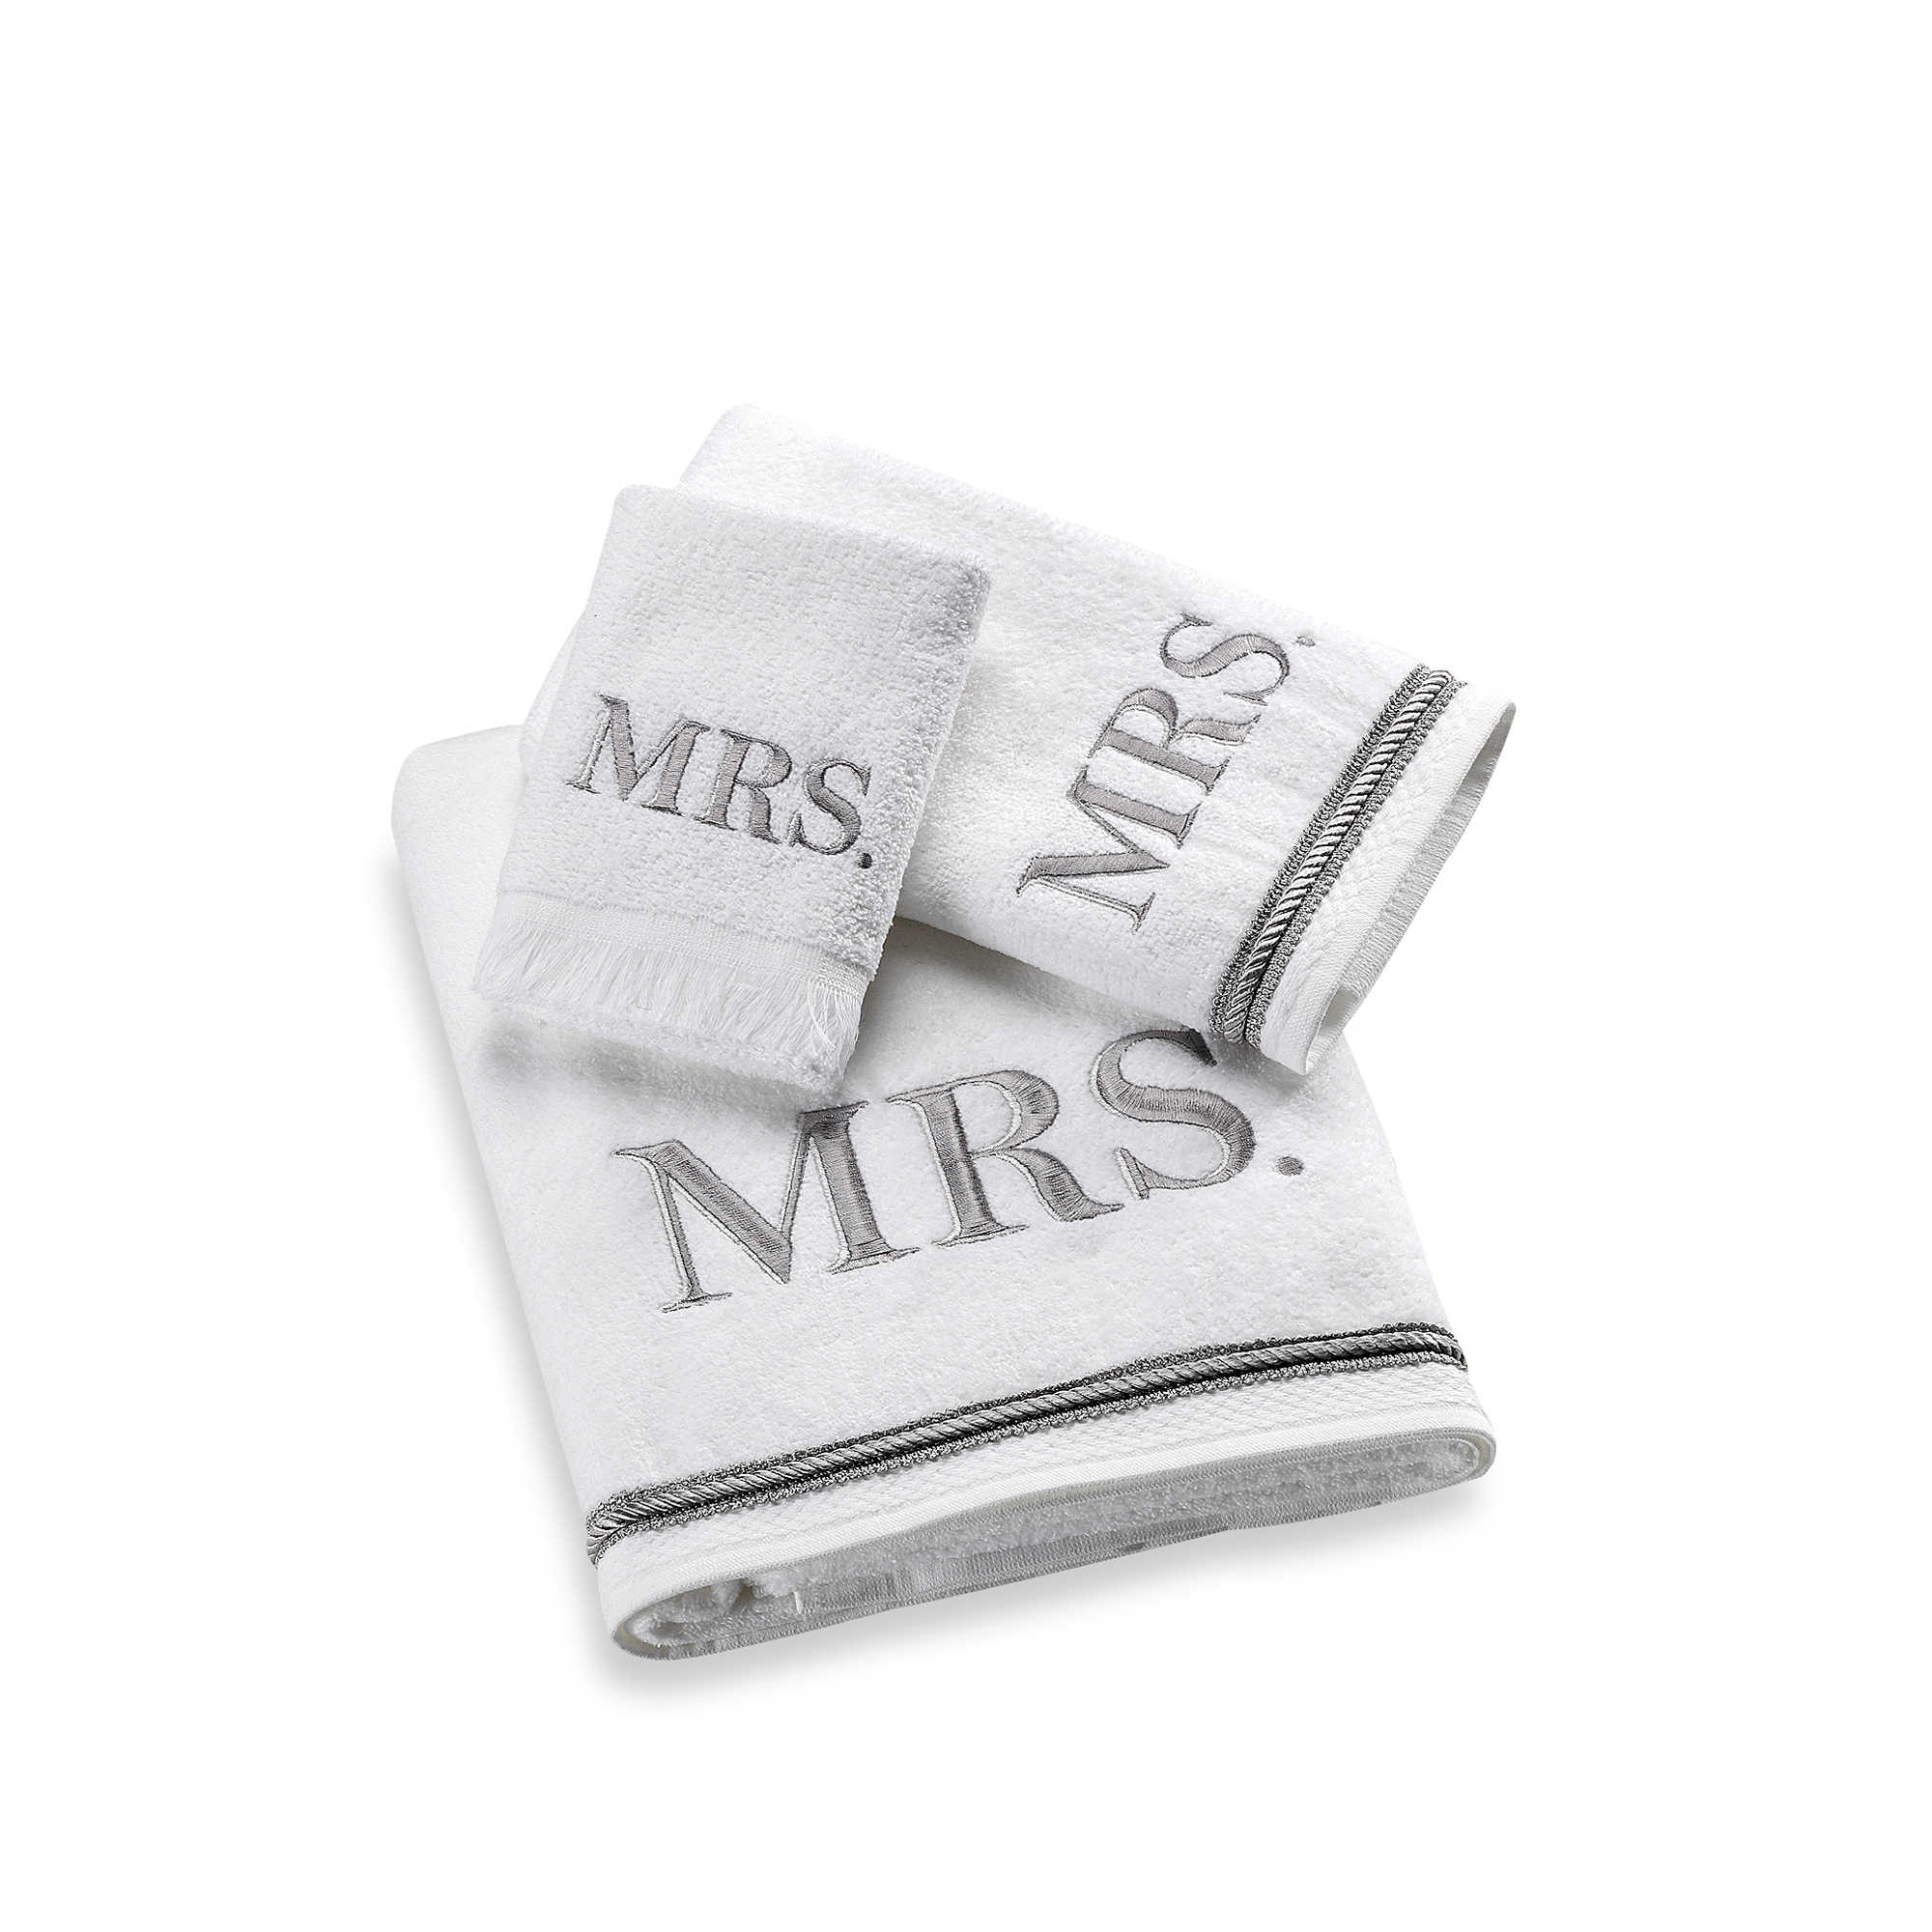 Monogram Towels For Bathroom: Monogrammed Guest Towels